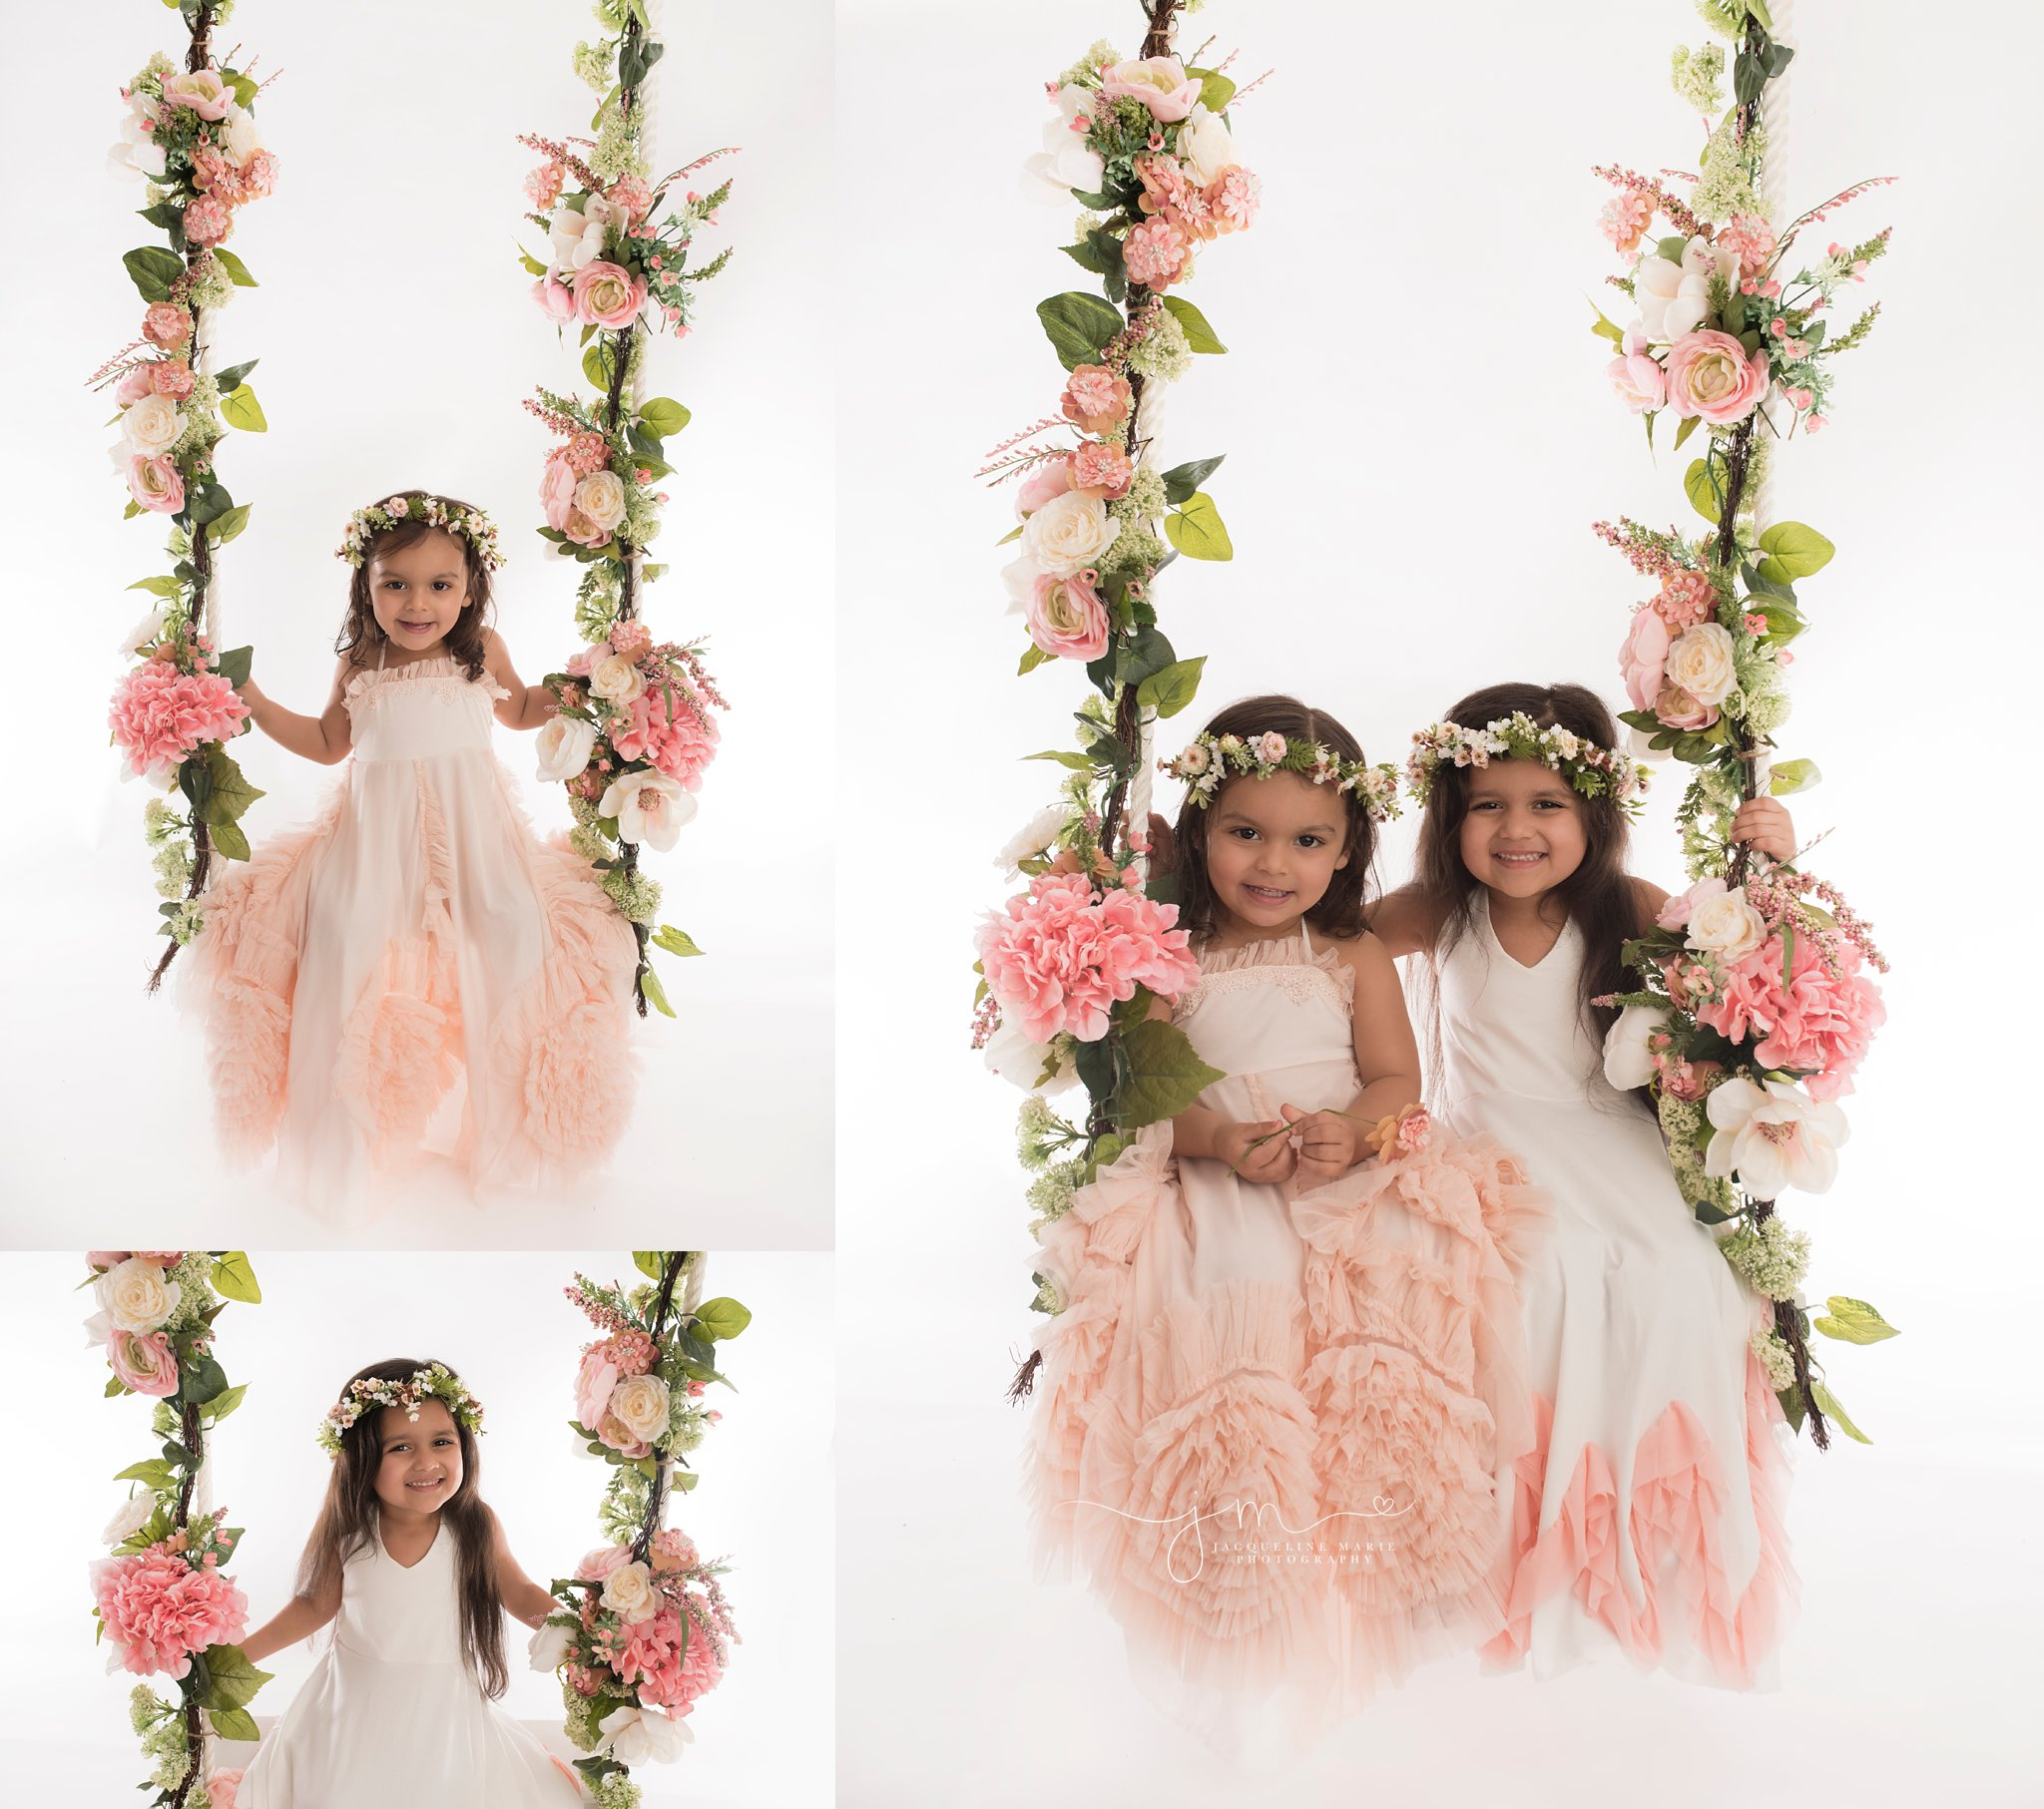 two beautiful sisters wear long ruffle dresses for portrait session in columbus ohio at jacqueline marie photography studio